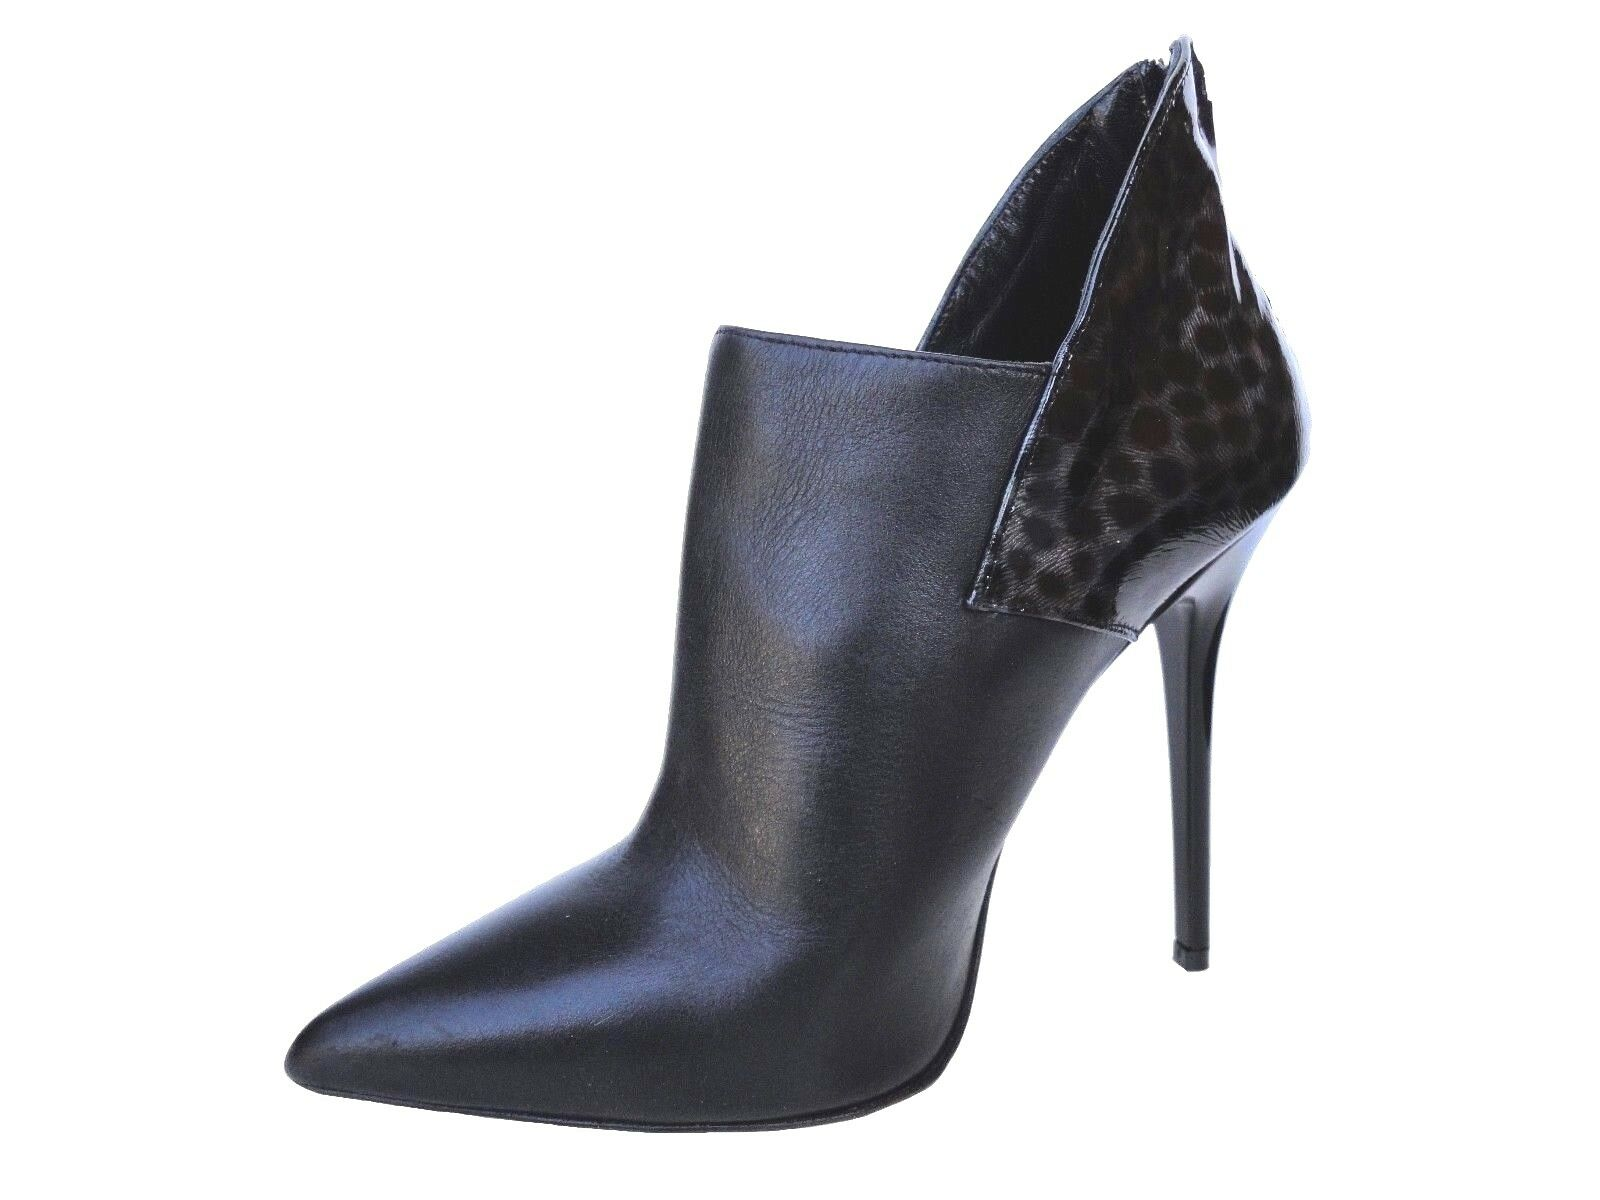 GIOHEL ITALY LEO ANKLE HIGH Stiefel STIEFEL STIVALETTI SHOES LEATHER LEATHER SHOES BLACK NERO 39 32ace5